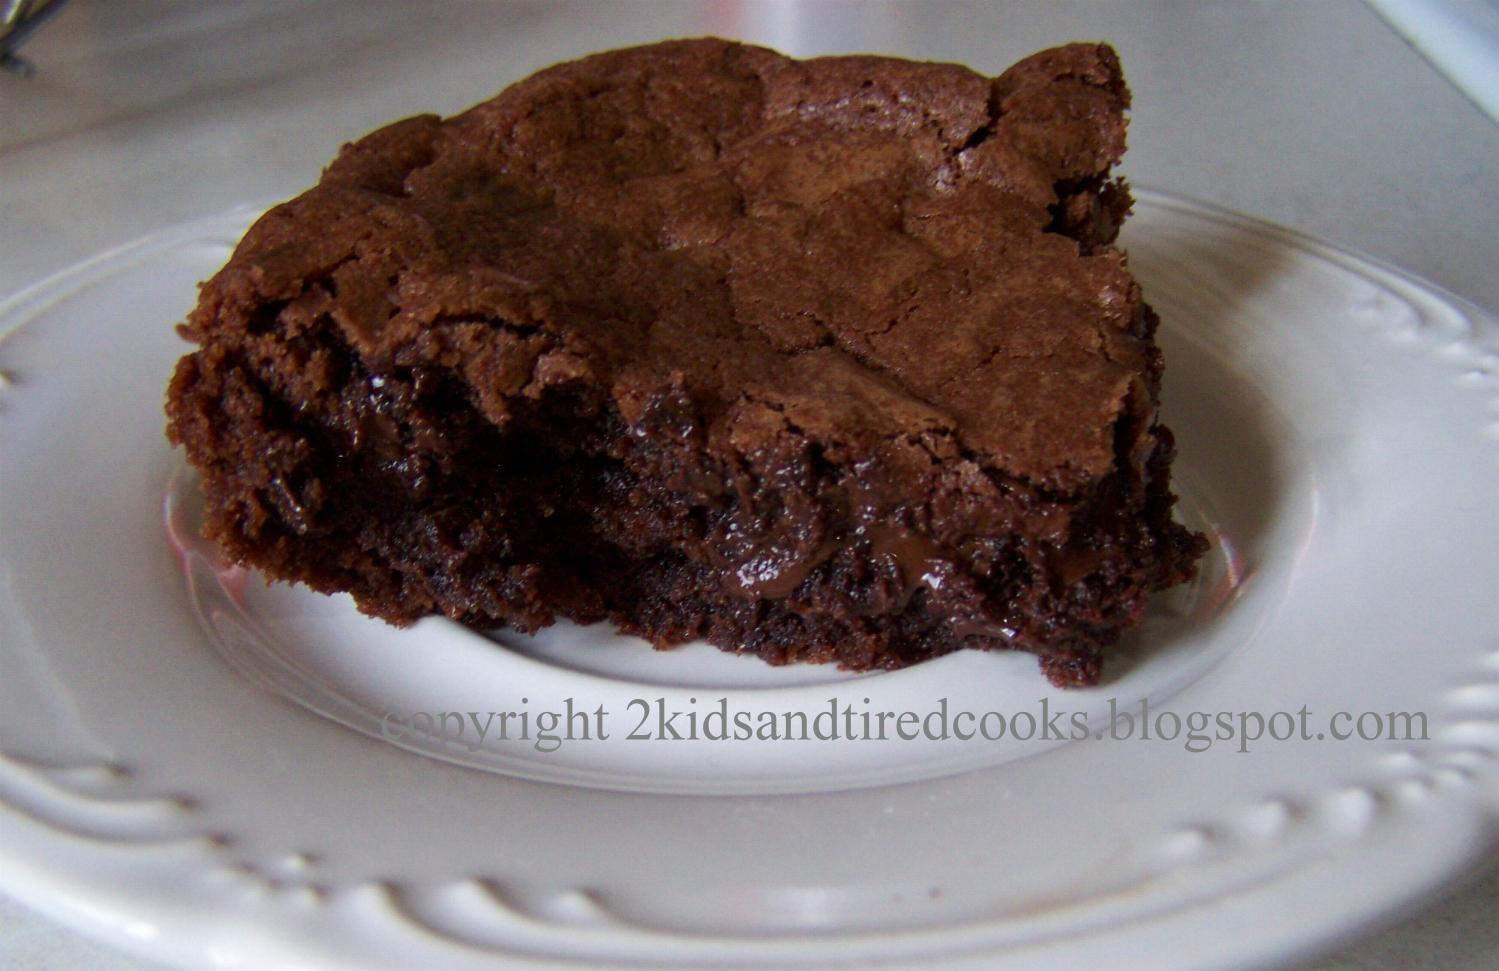 Kids and Tired Cooks: Cocoa Brownies